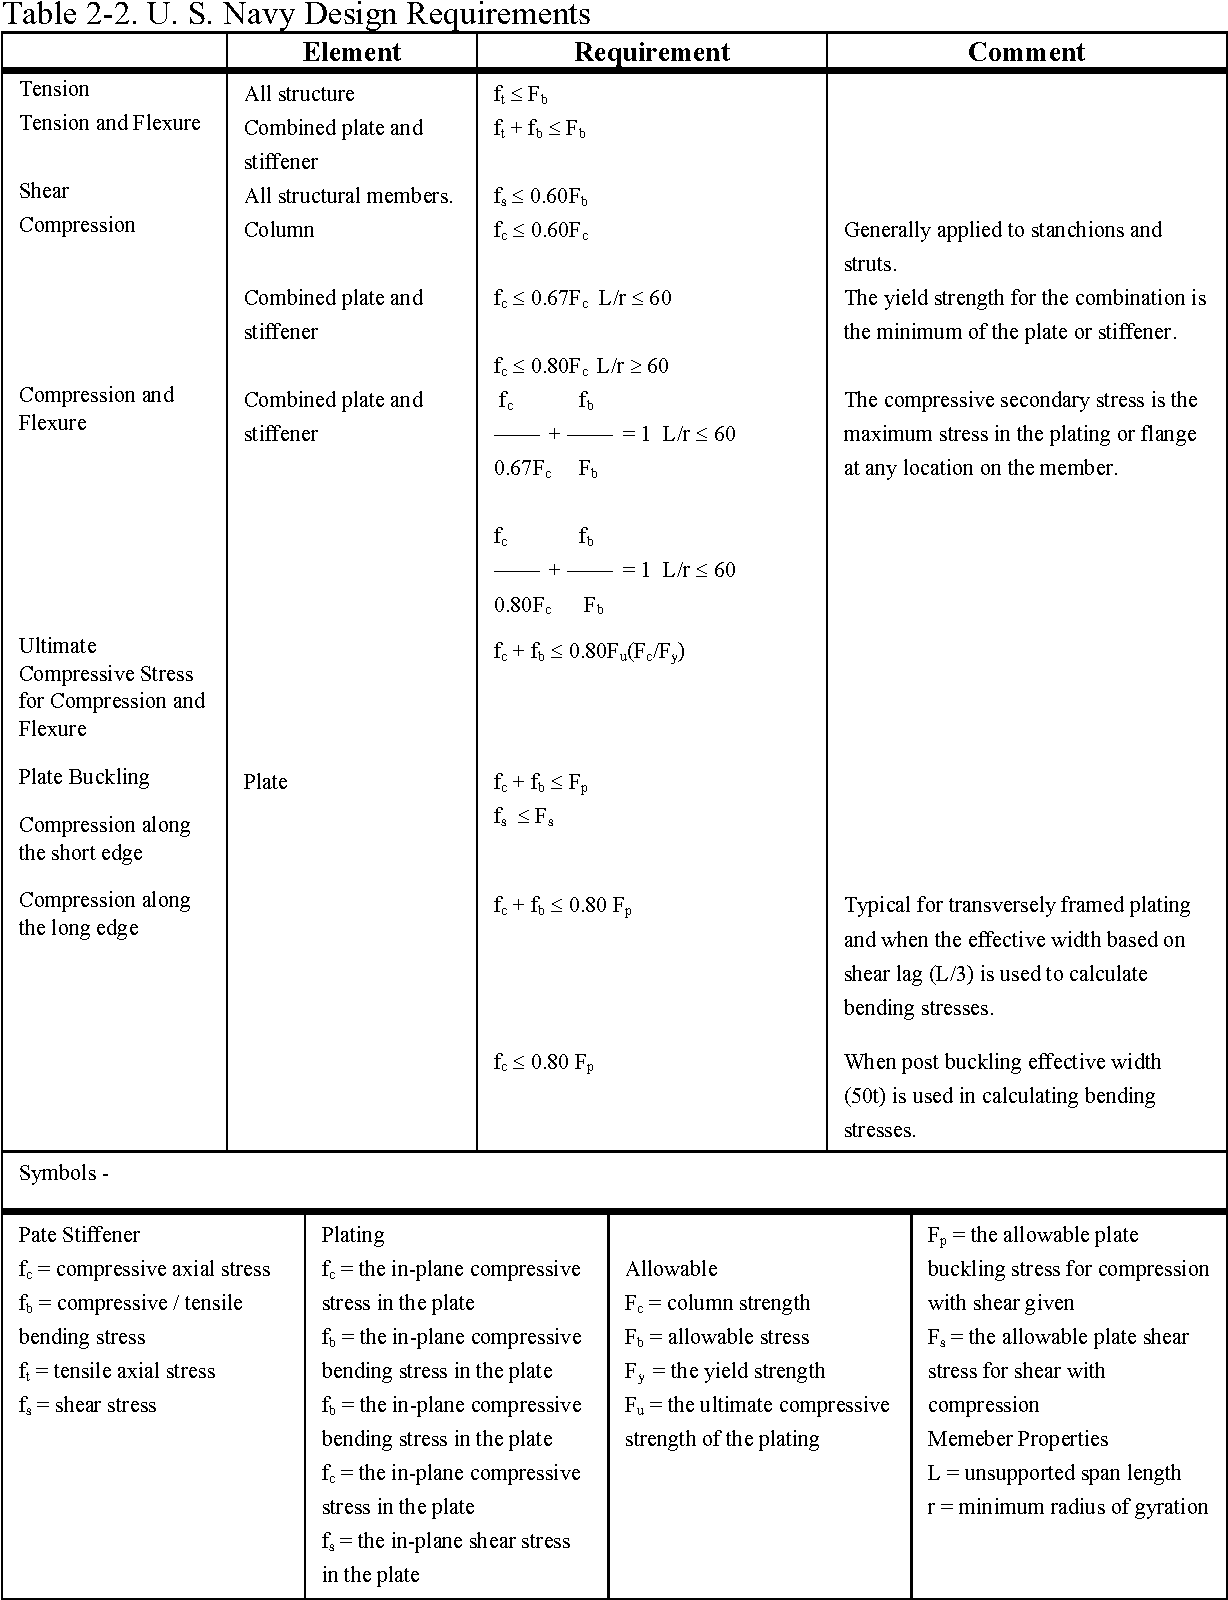 Table 2-2 from Reliability-based Design of Ship Structures